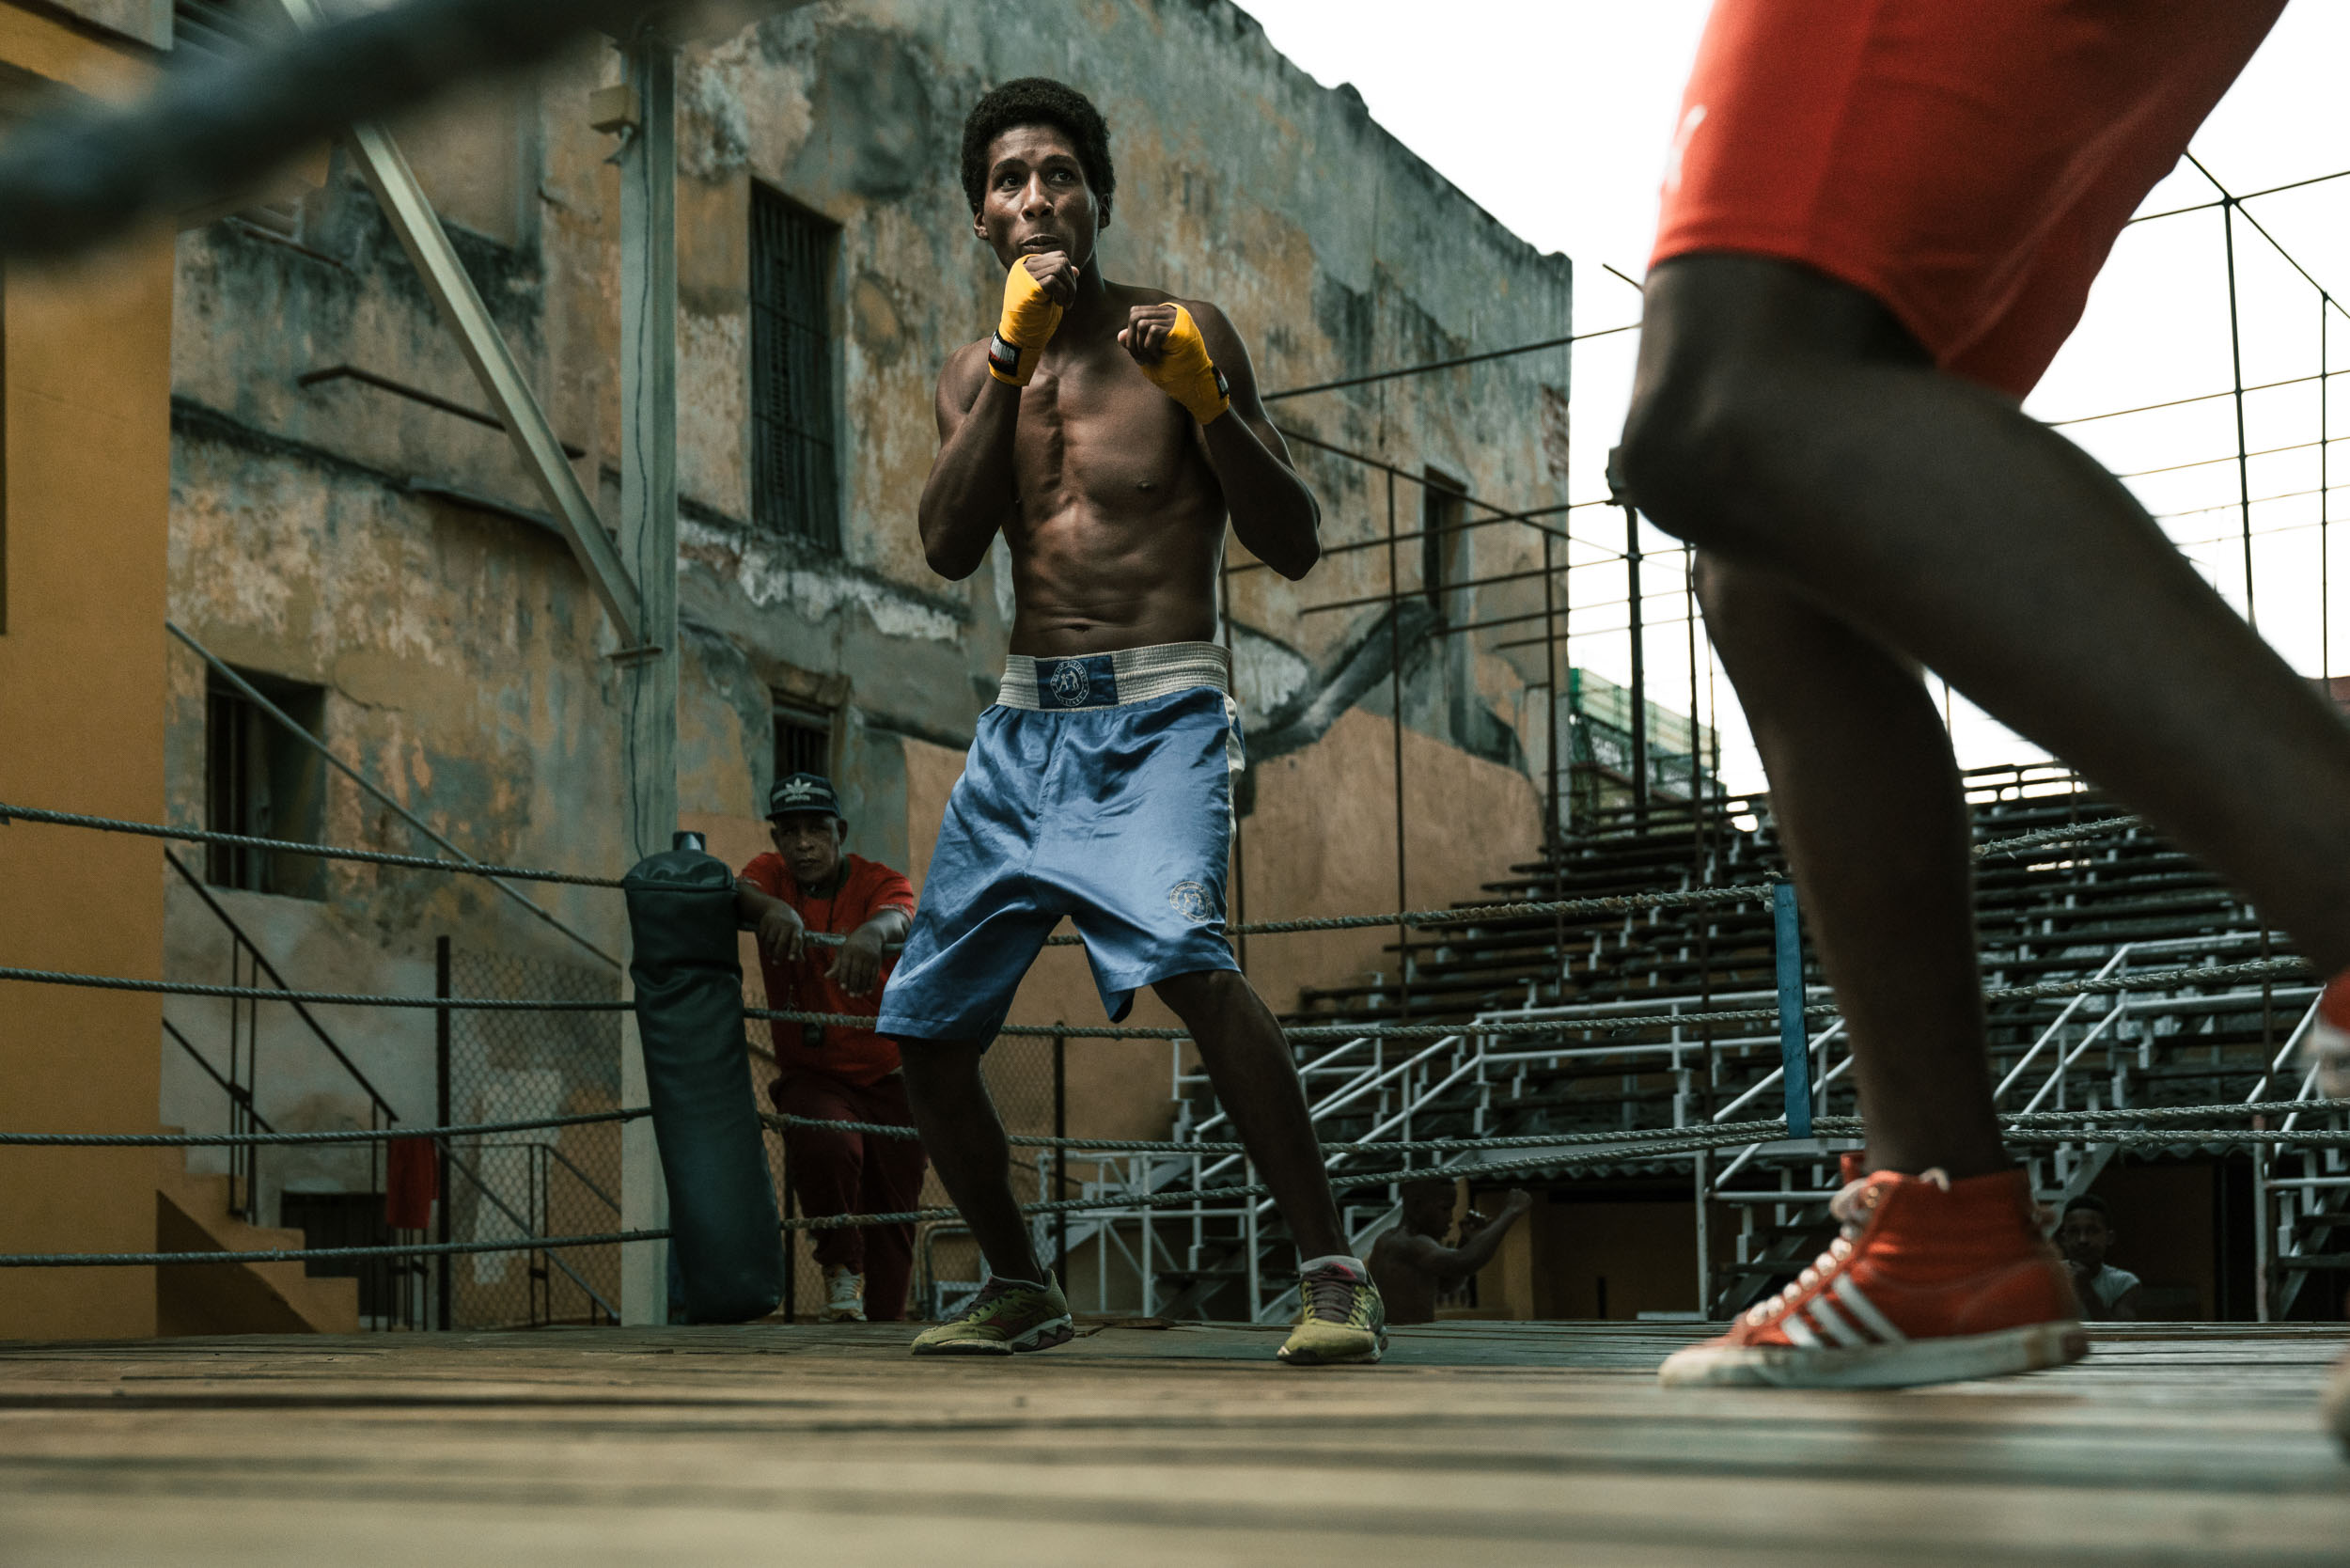 Male boxer in blue shorts spares with opponent in red shorts in Rafael Trejo boxing gym in Havana Cuba